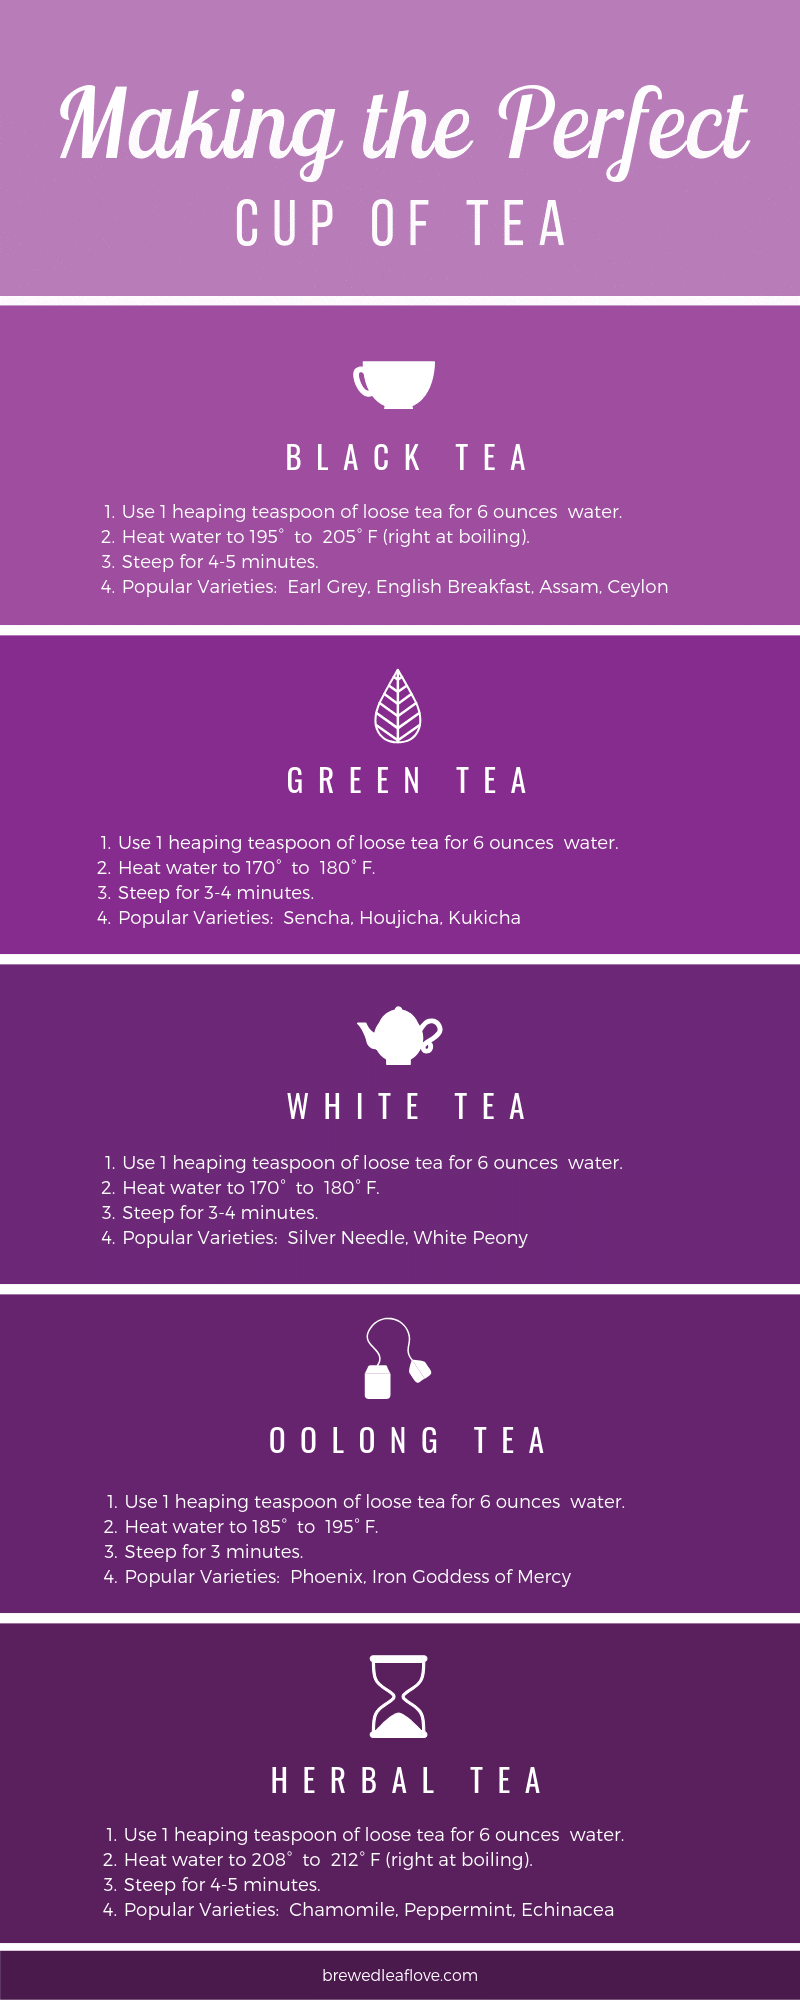 Purple infographic showing how to brew the perfect cup of tea including how much tea to use, how long to steep and how hot the water needs to be for each tea type.